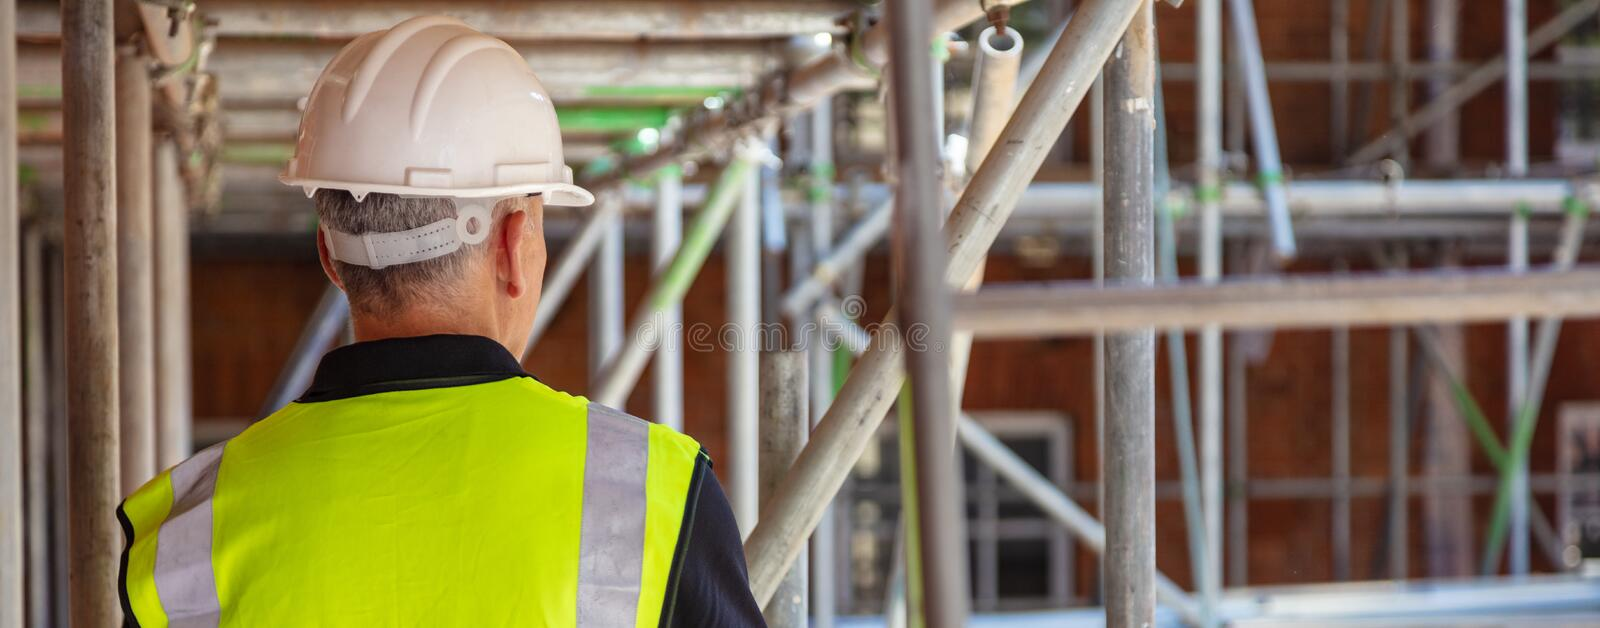 Rear View of a Construction Worker on Building Site royalty free stock images